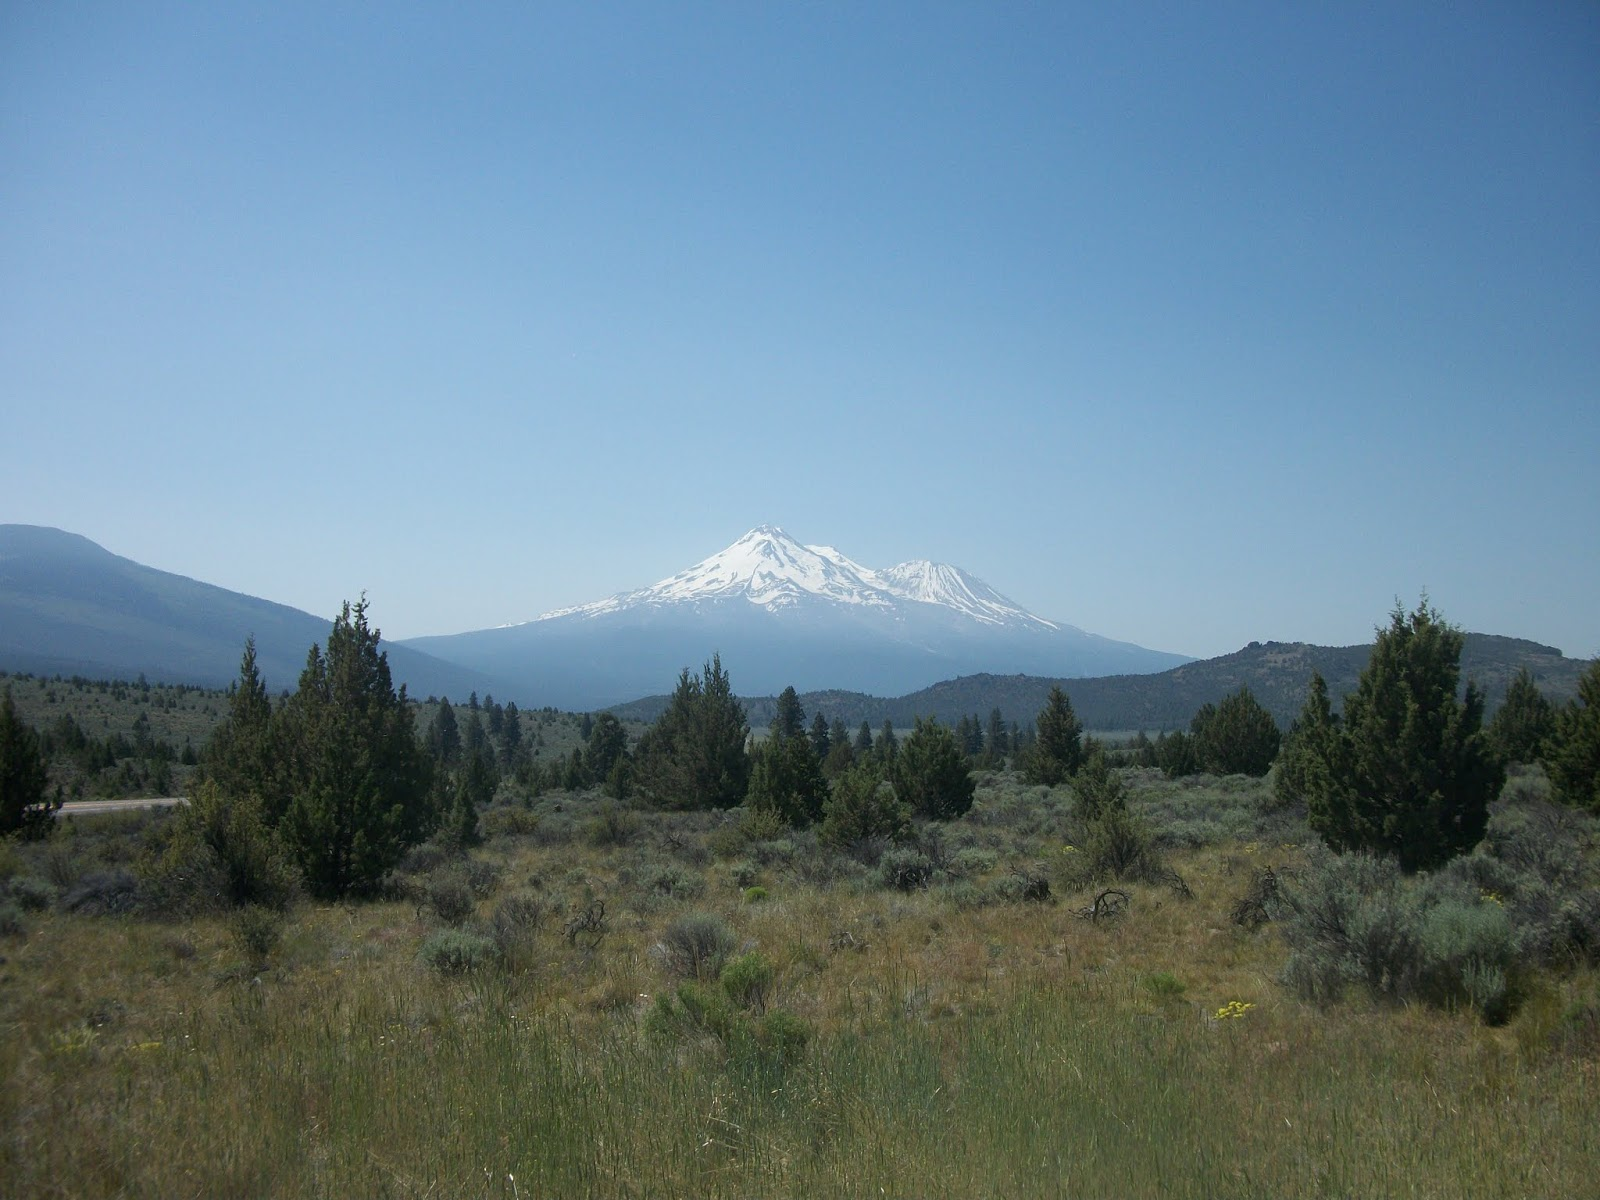 in 2016 i traveled much of the byway in siskiyou county via us route 97 california state route 161 and hill road to lava beds national monument